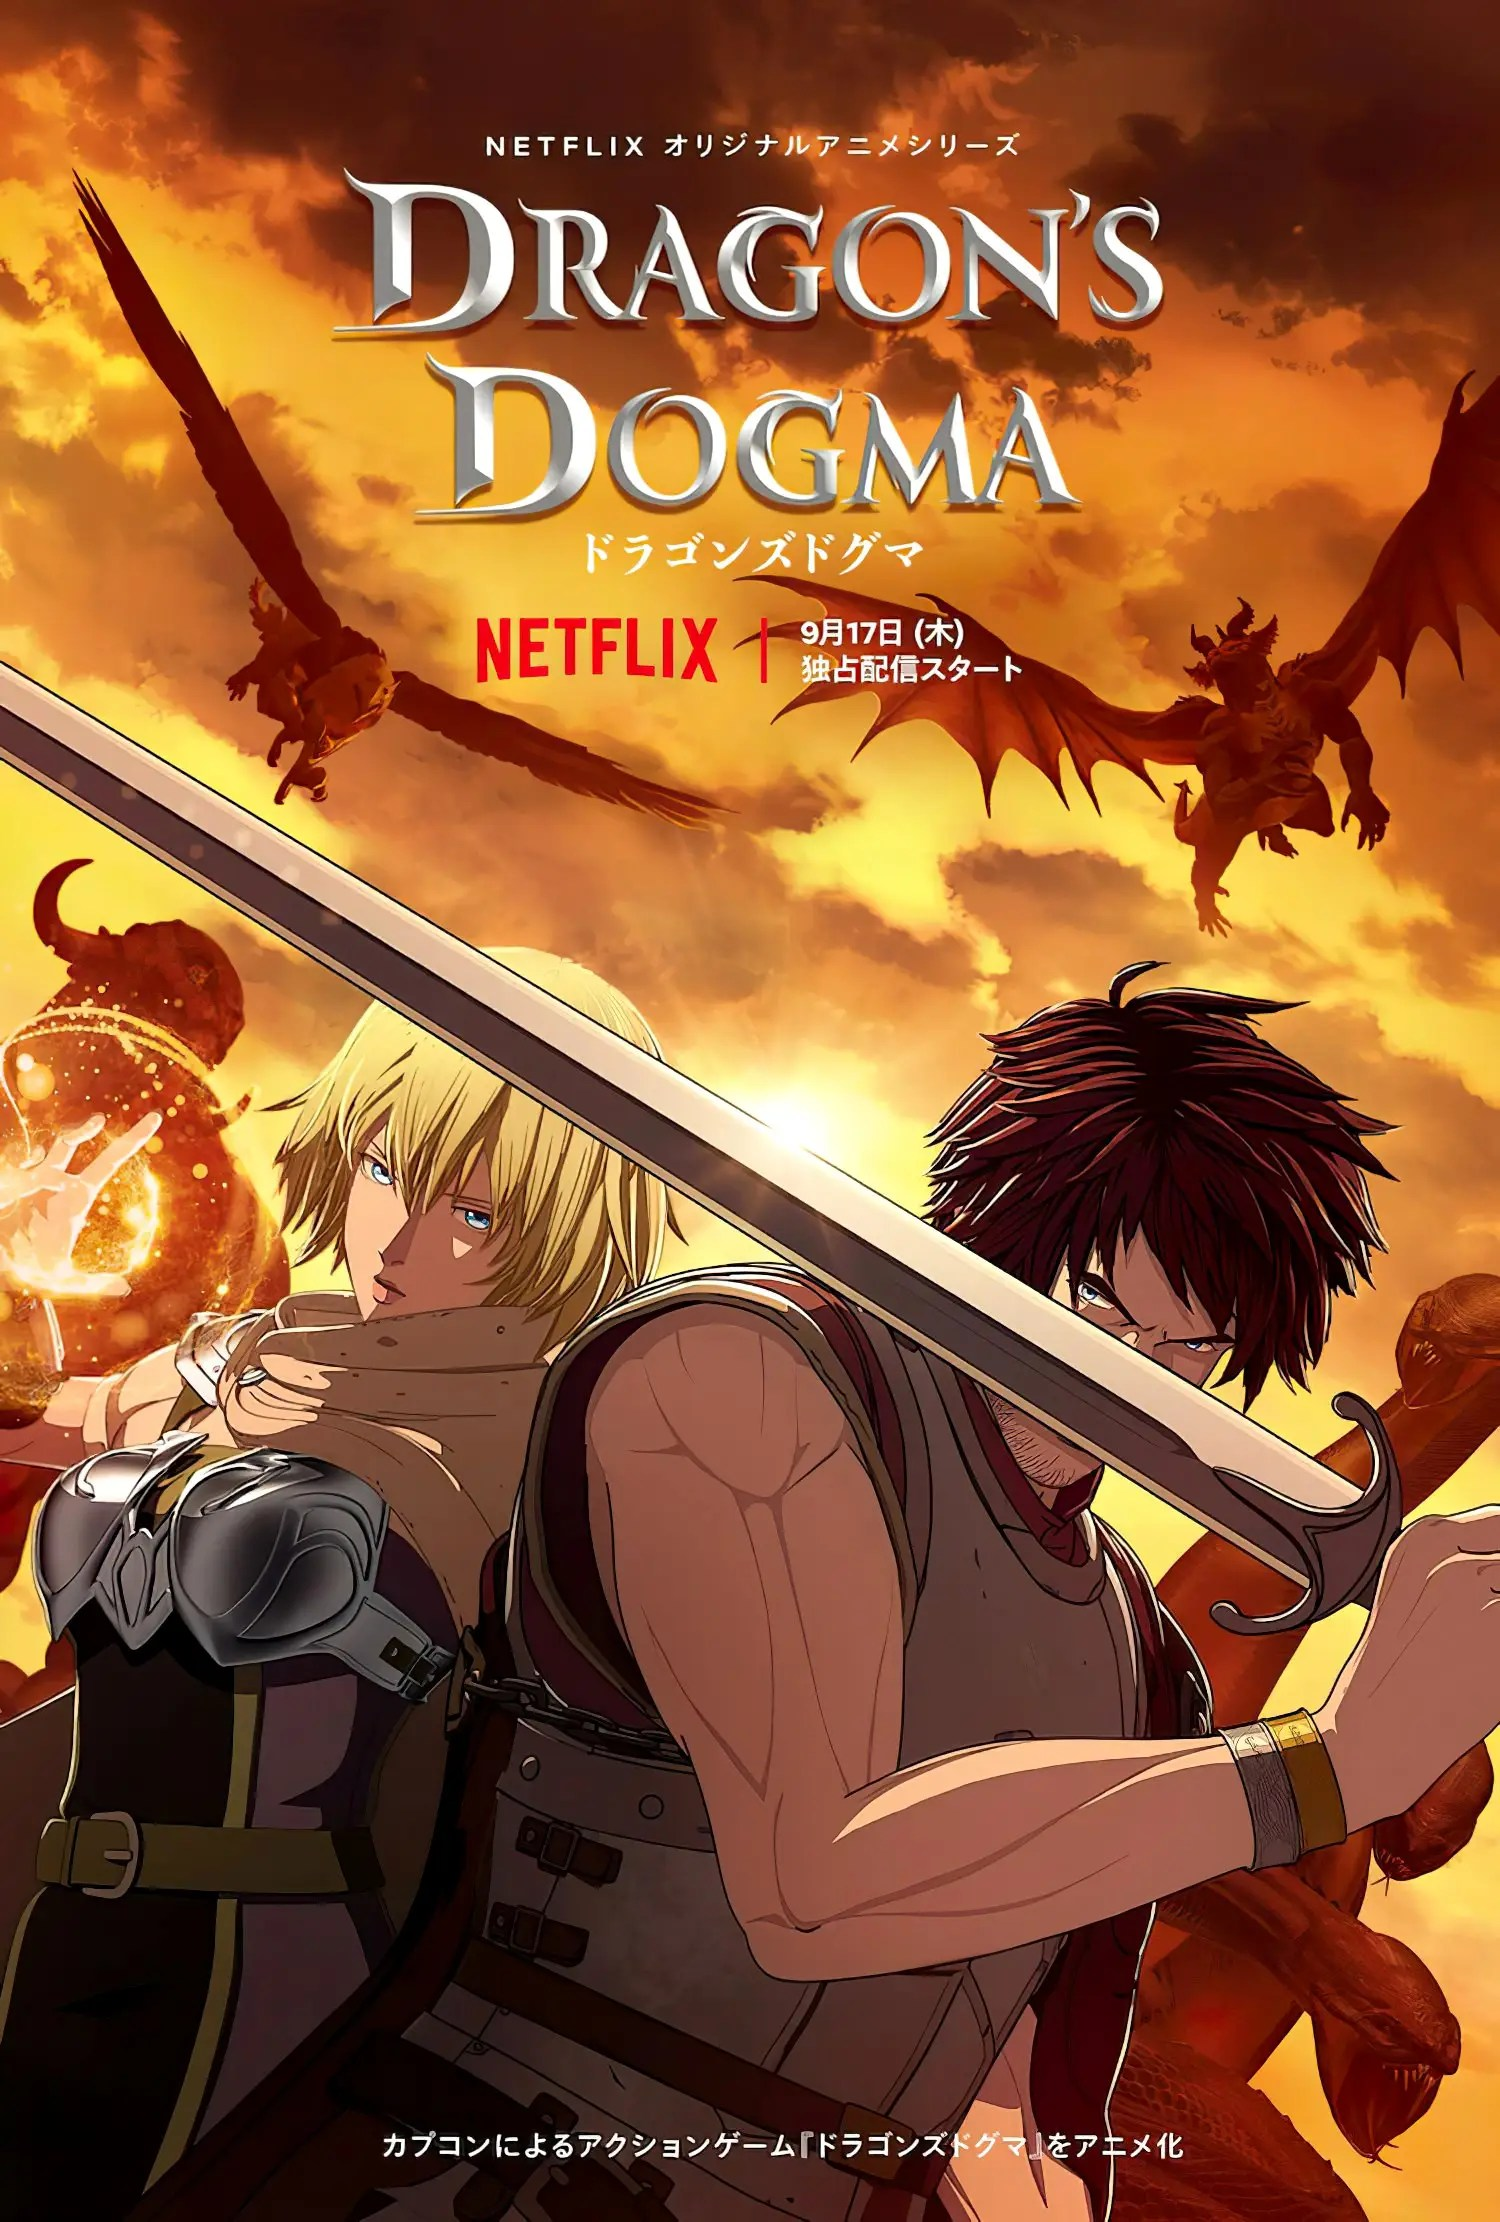 Trailer officiel pour l'anime Netflix Dragon's Dogma